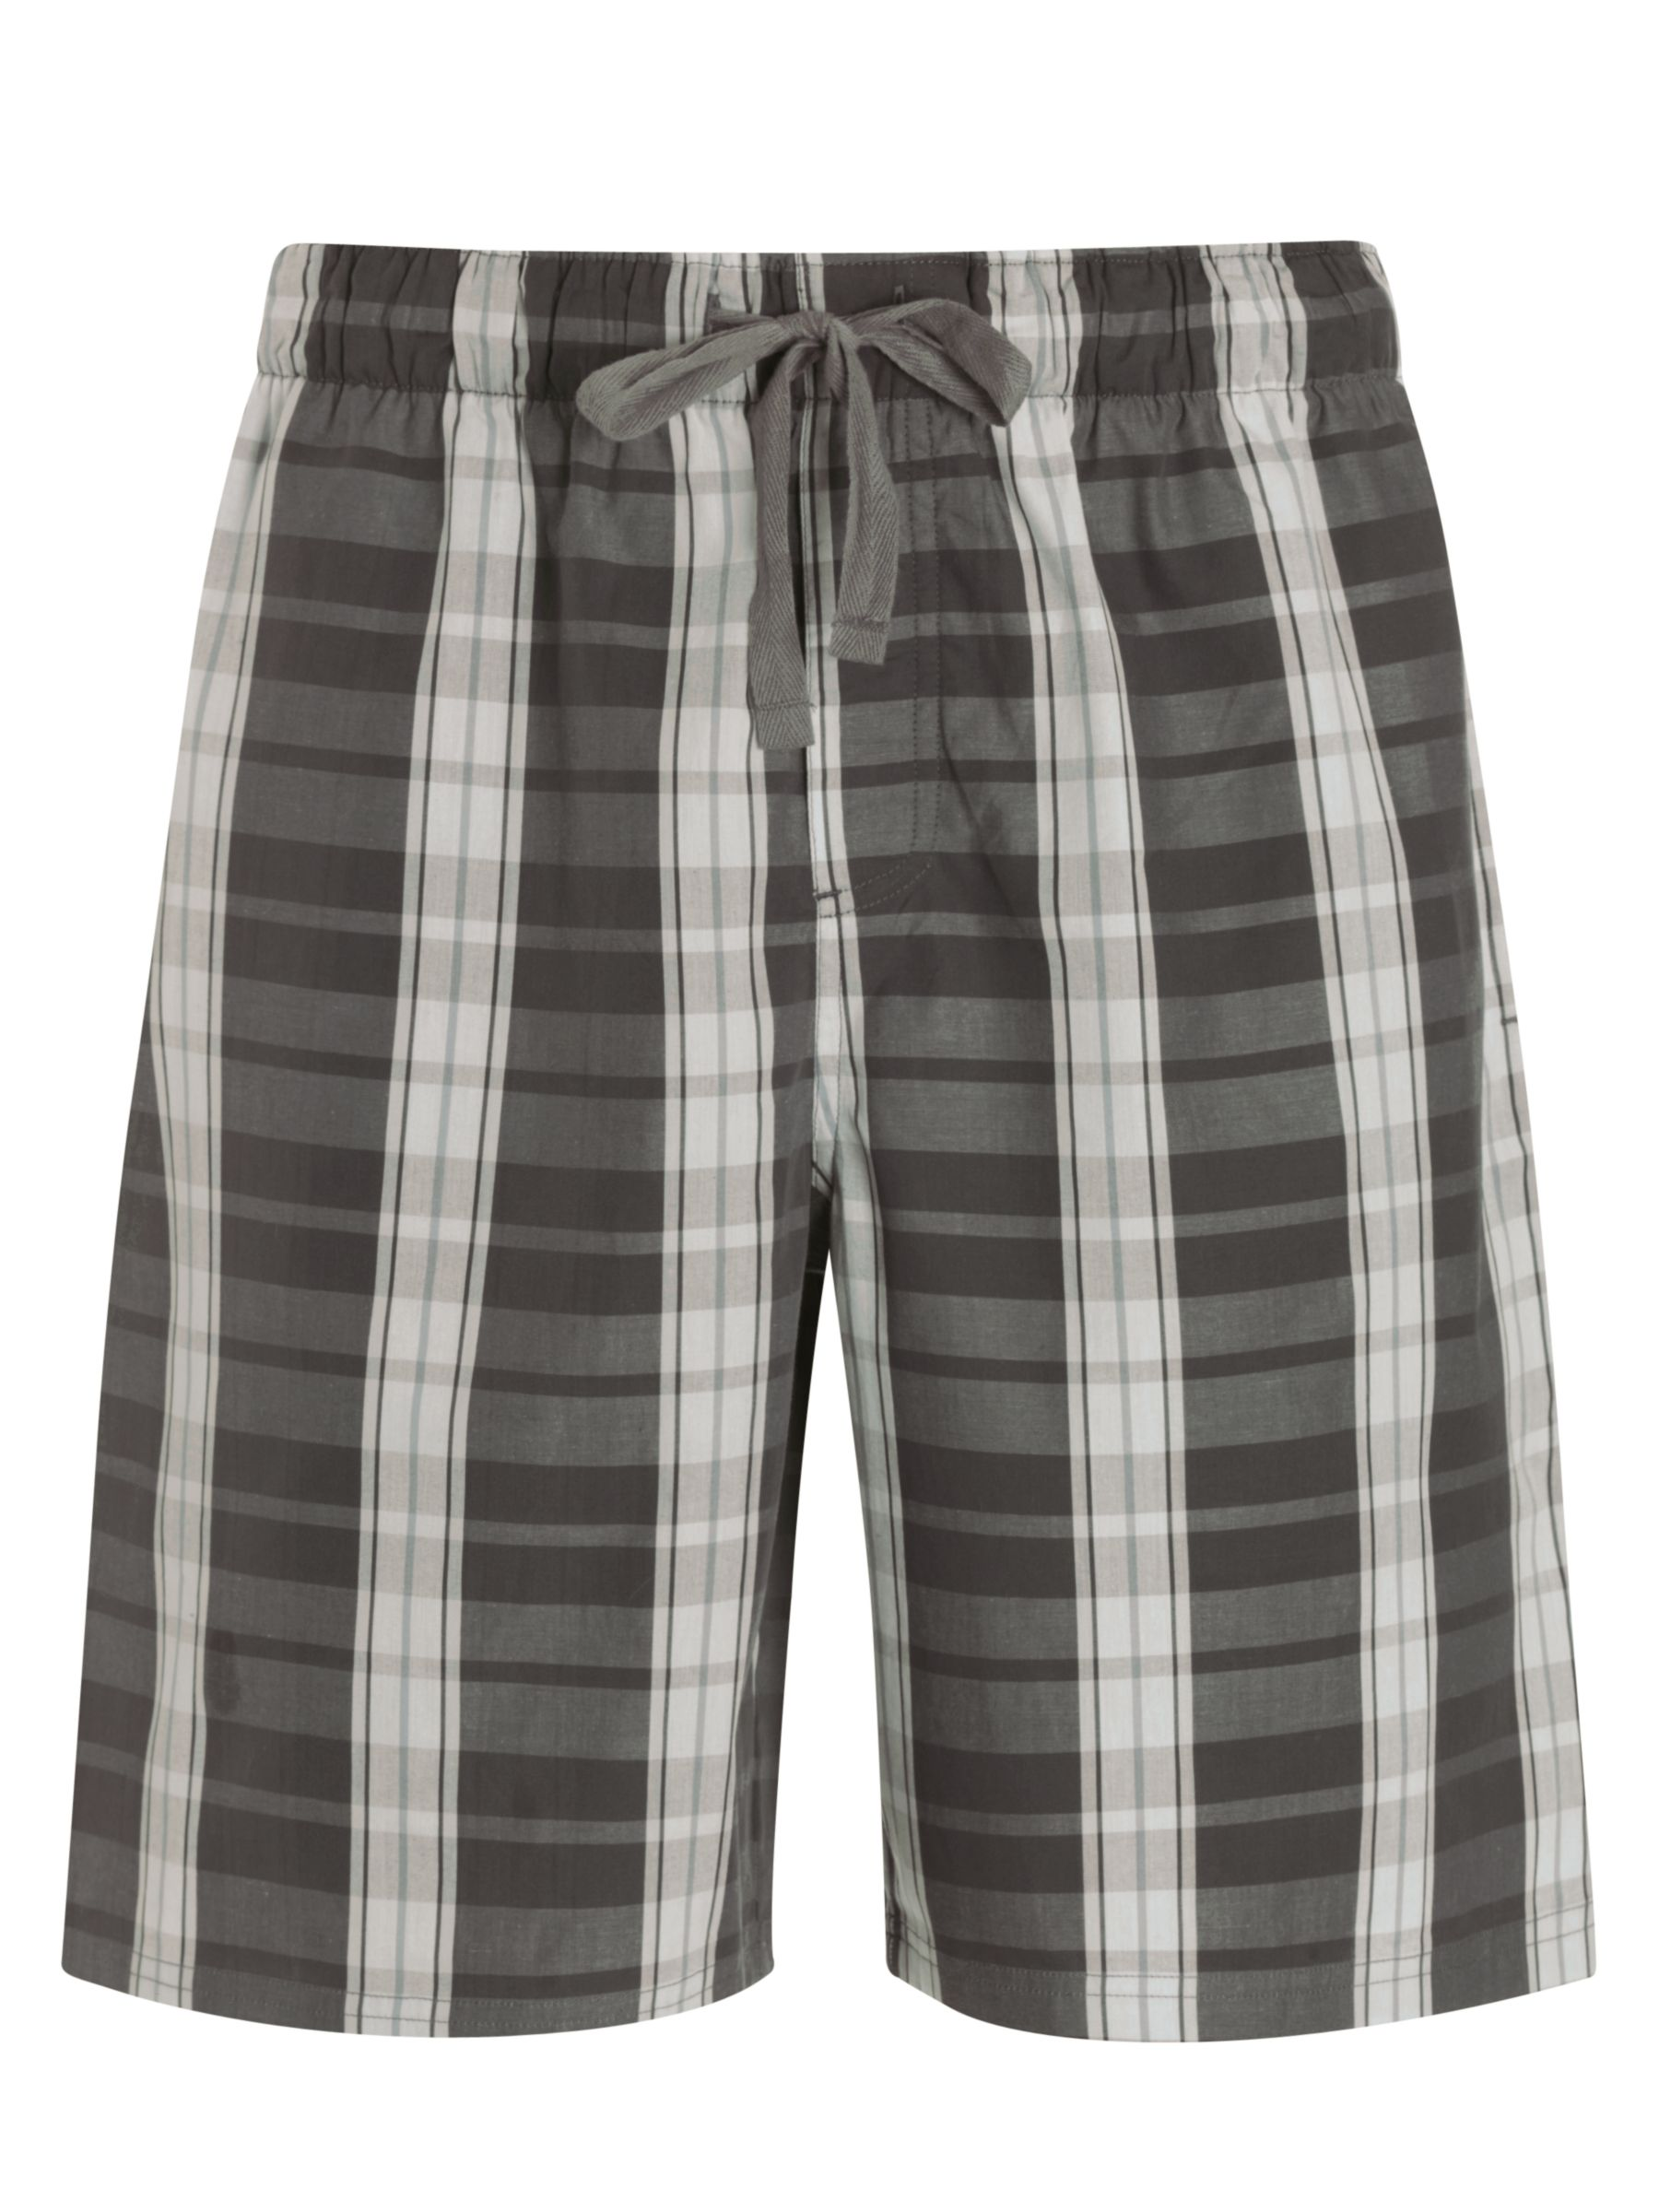 John Lewis Check Cotton Lounge Shorts